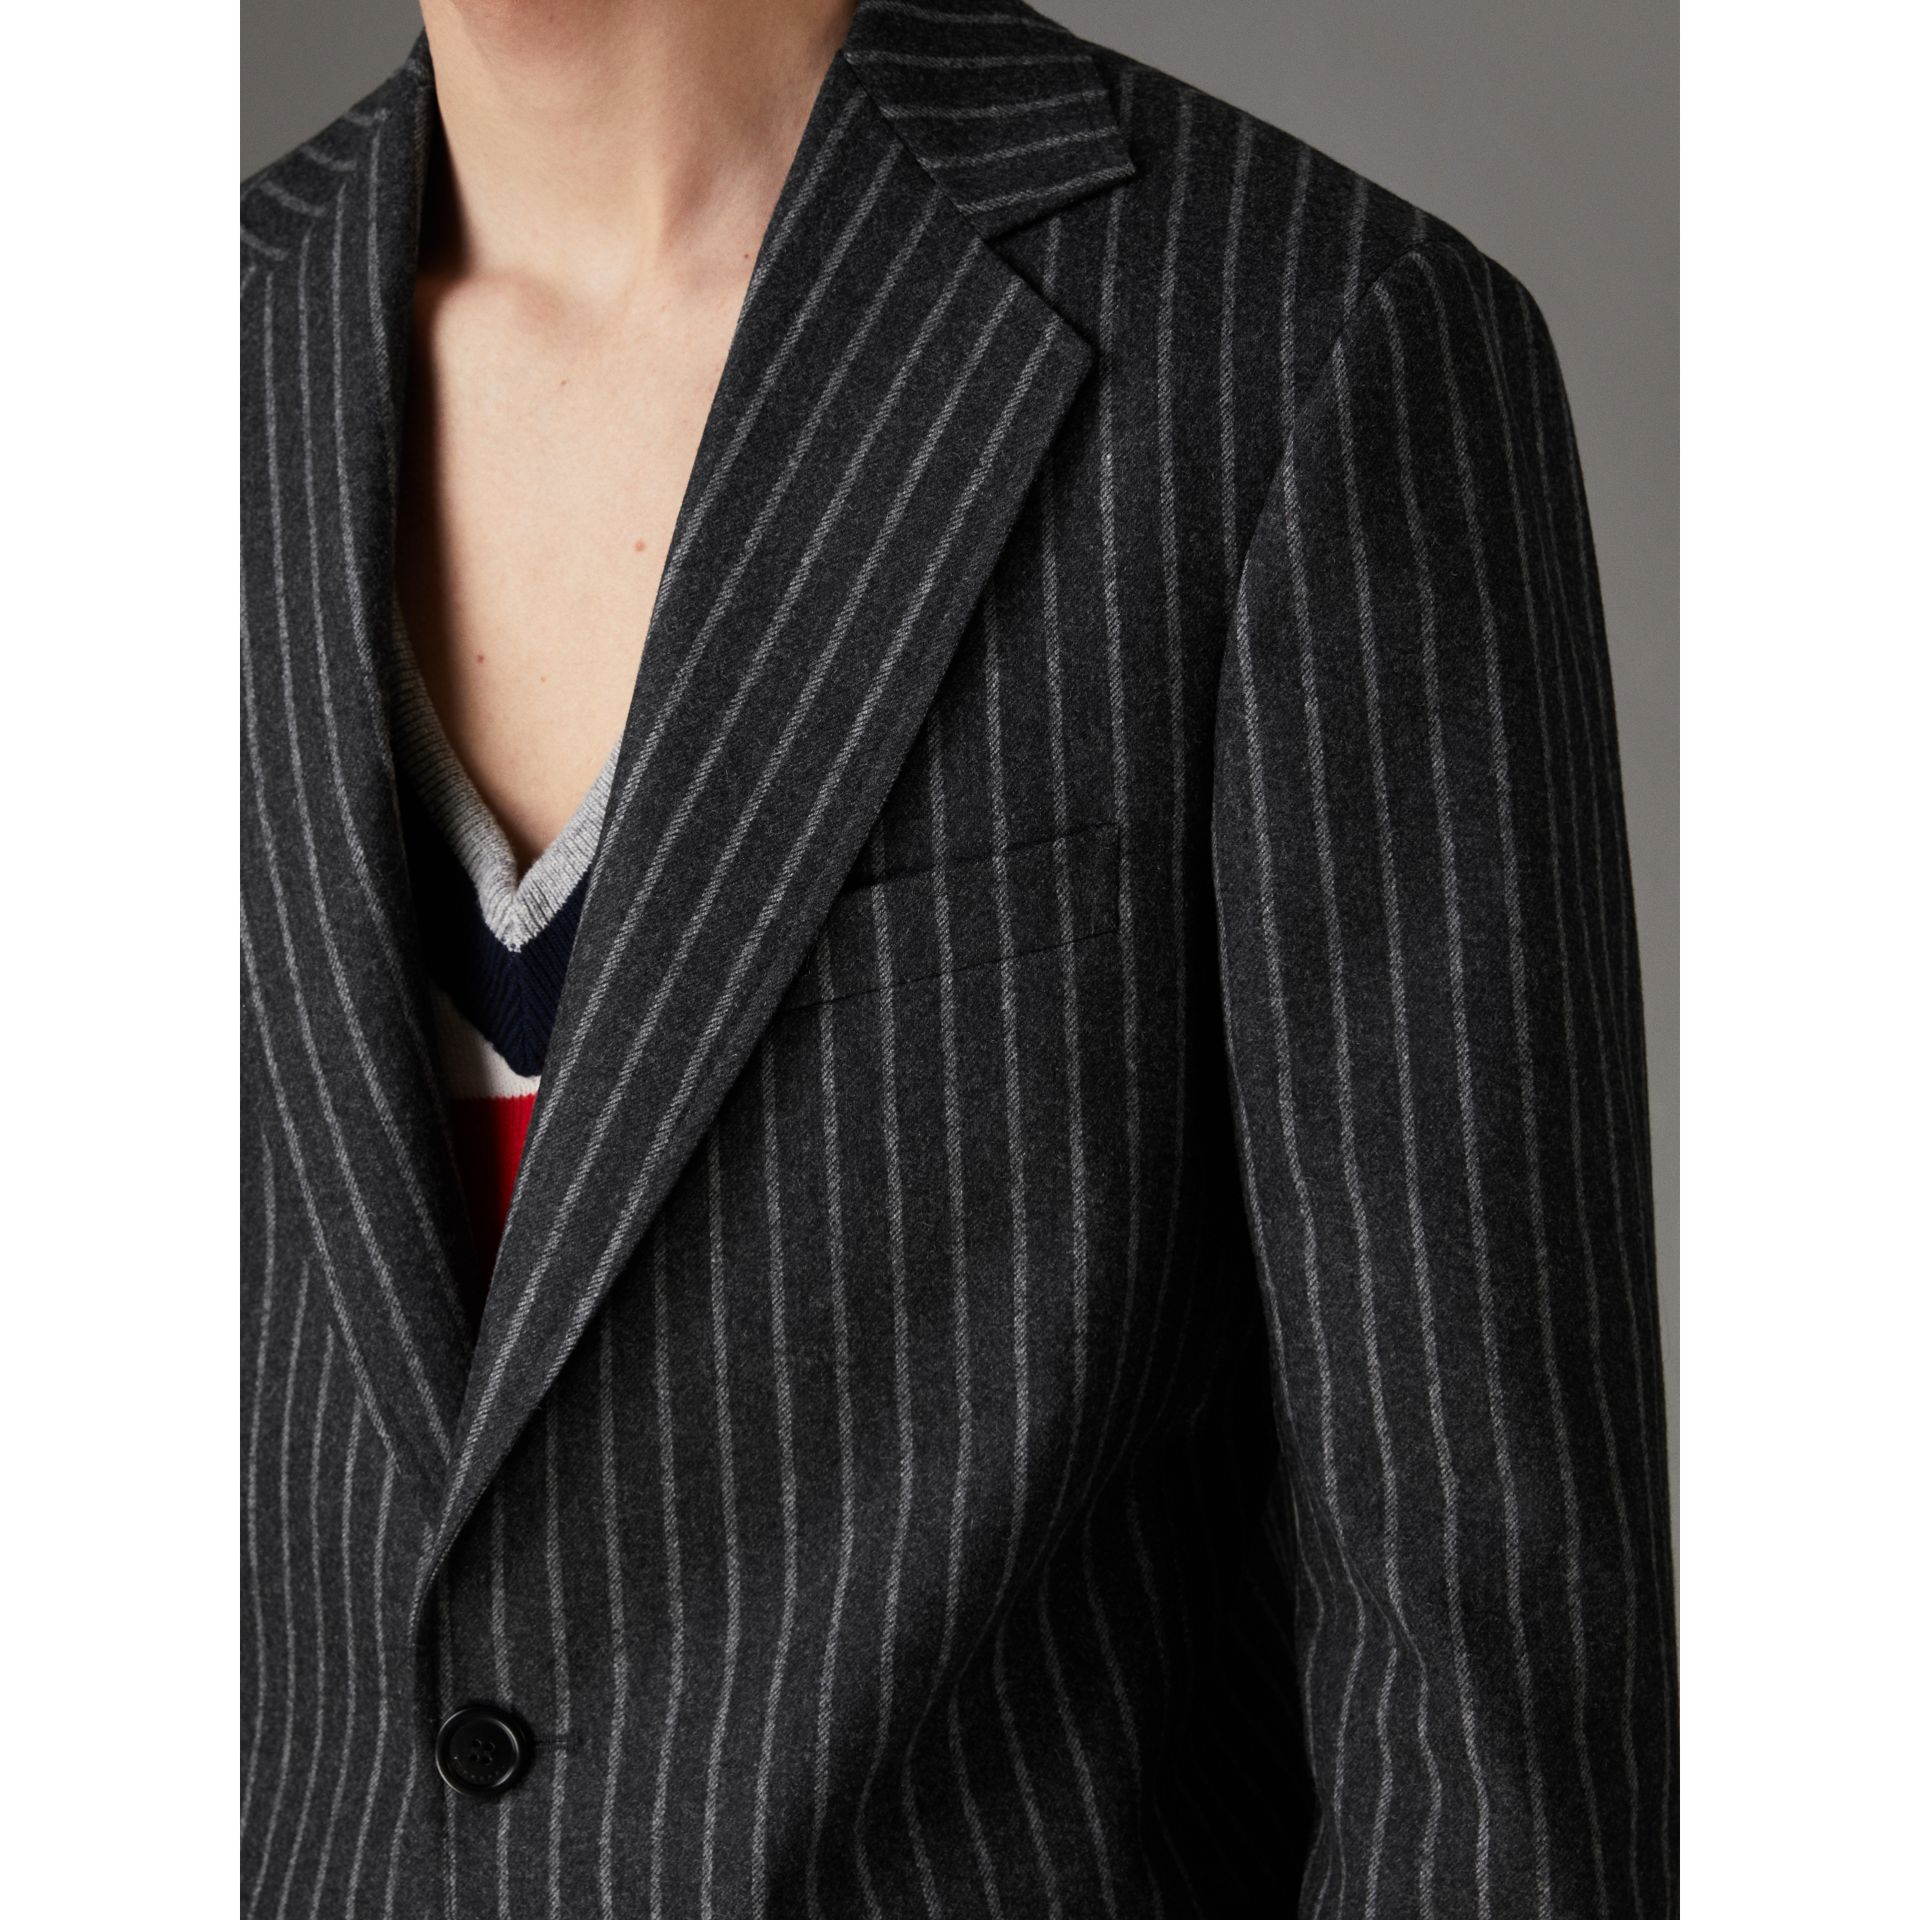 Pinstriped Wool Blend Twill Tailored Jacket in Dark Grey | Burberry - gallery image 1